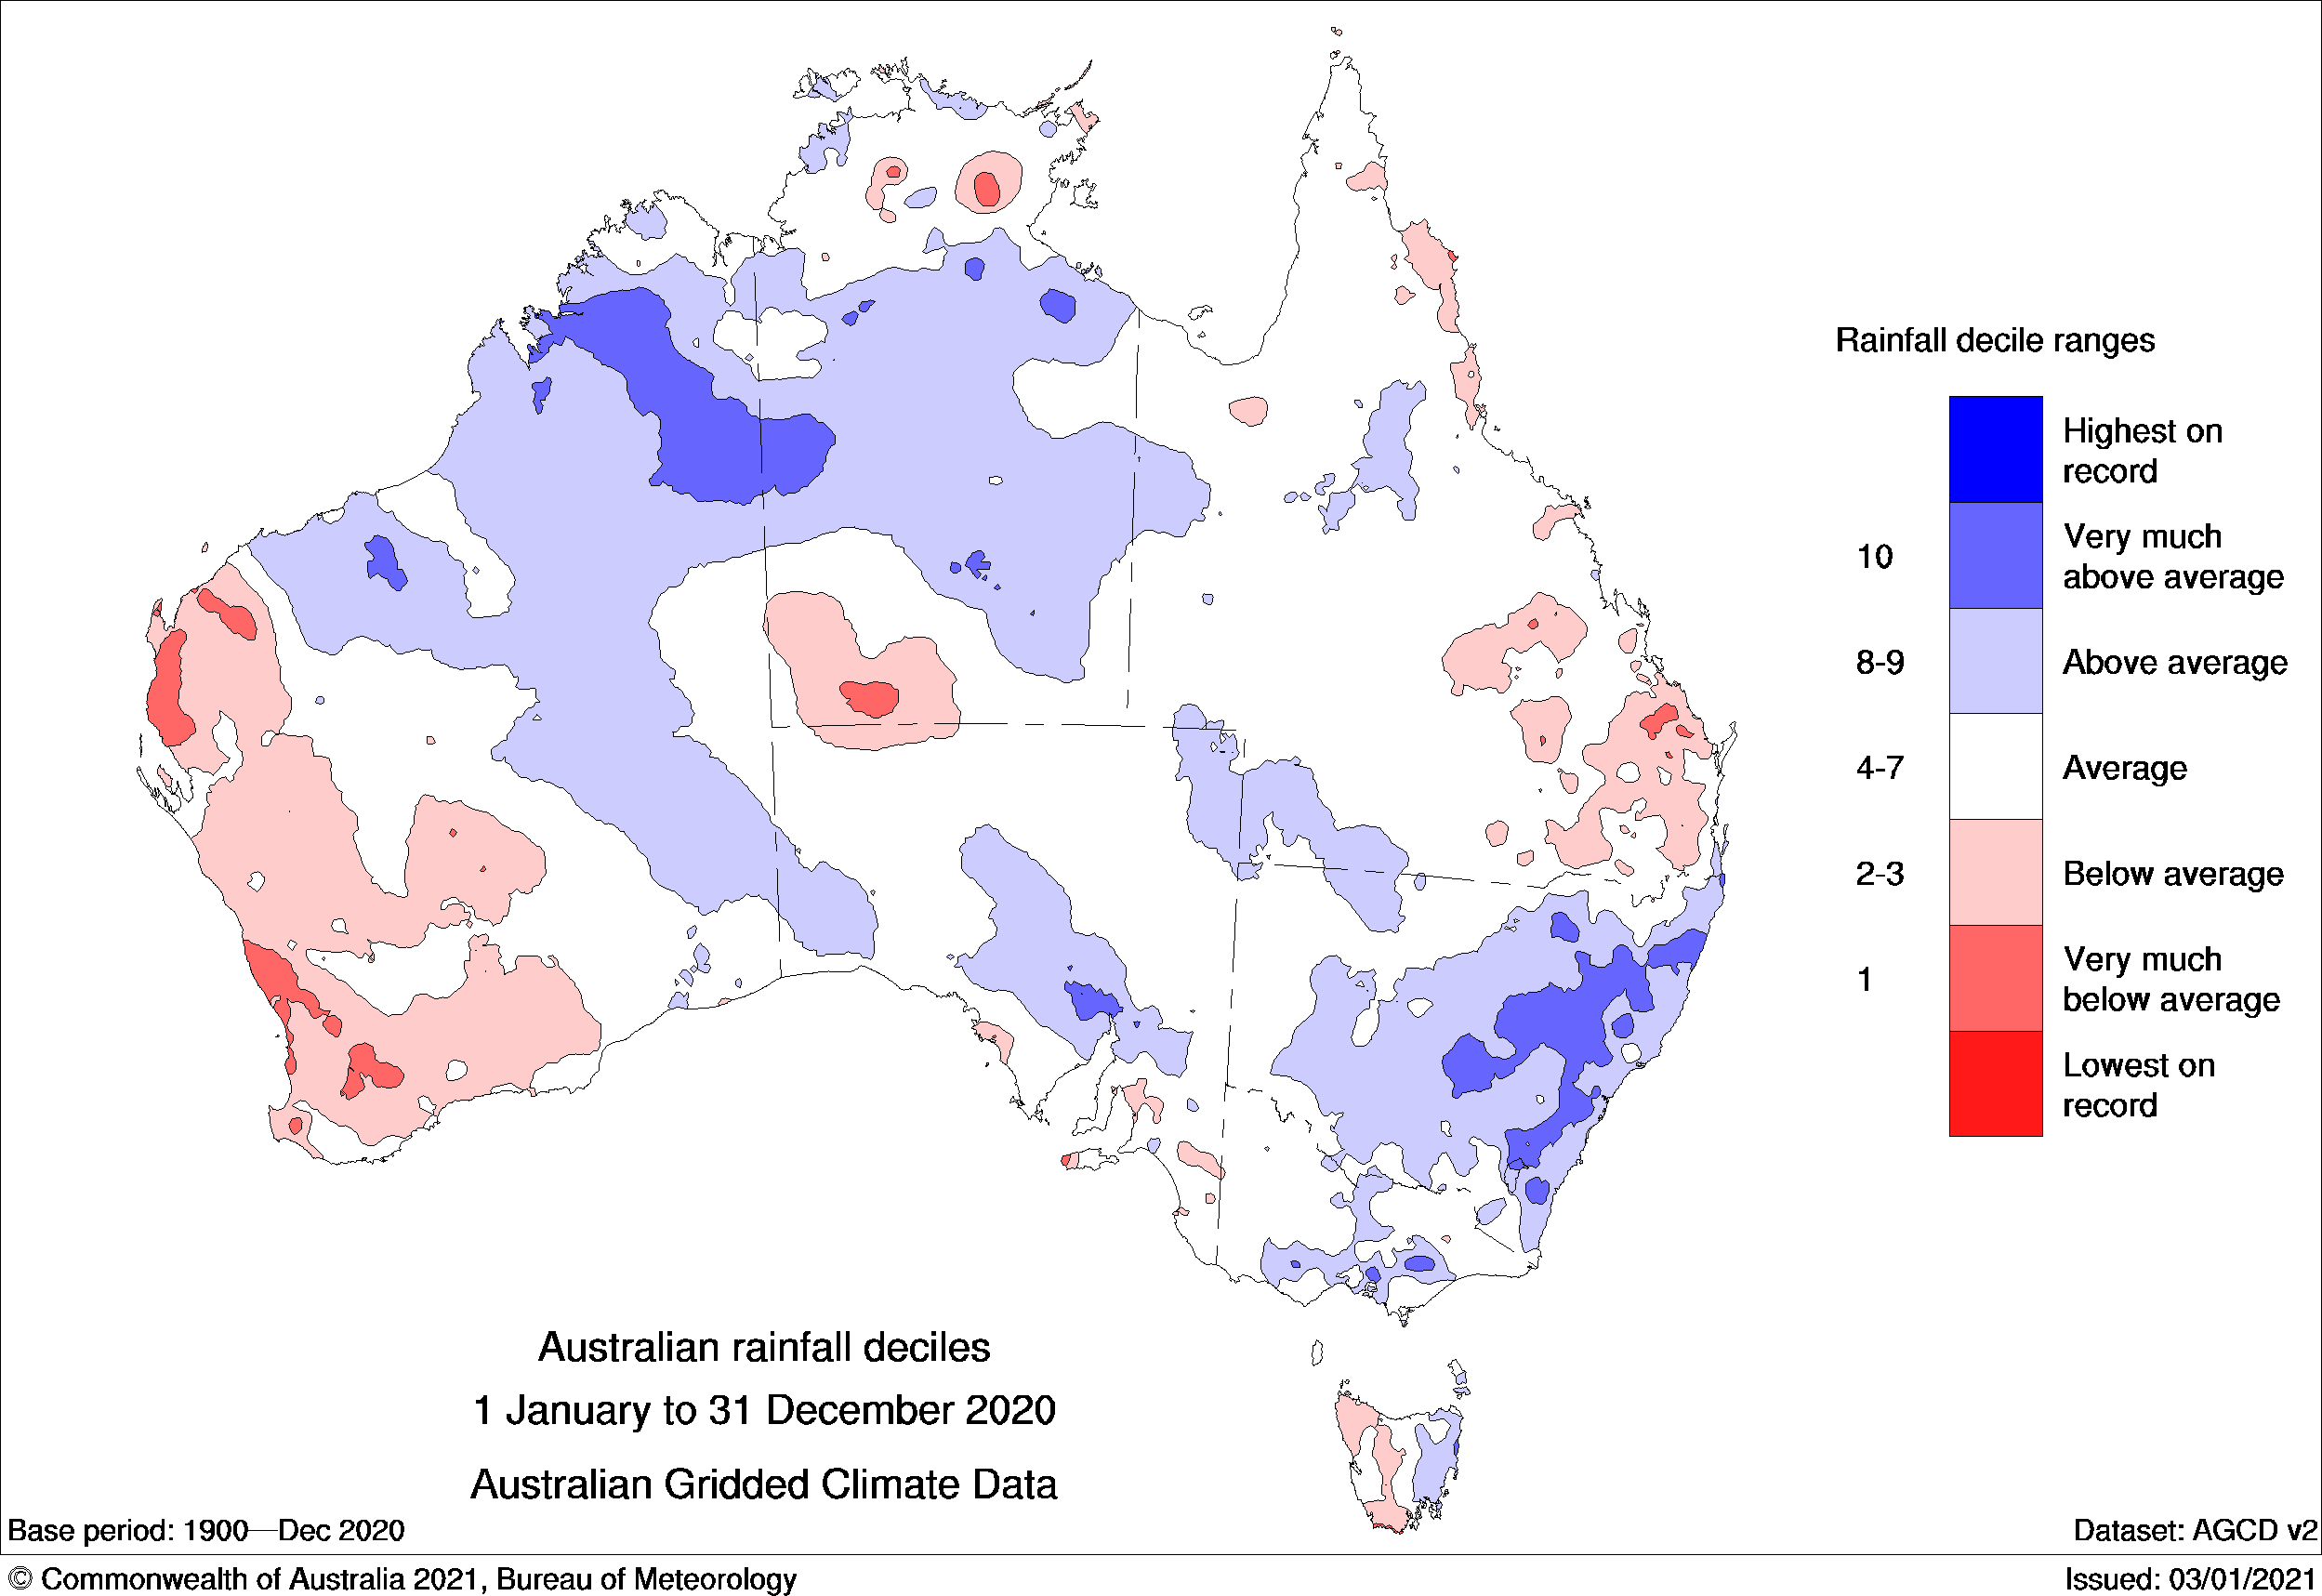 Map of Australia showing rainfall deciles for 2020 as described in text.